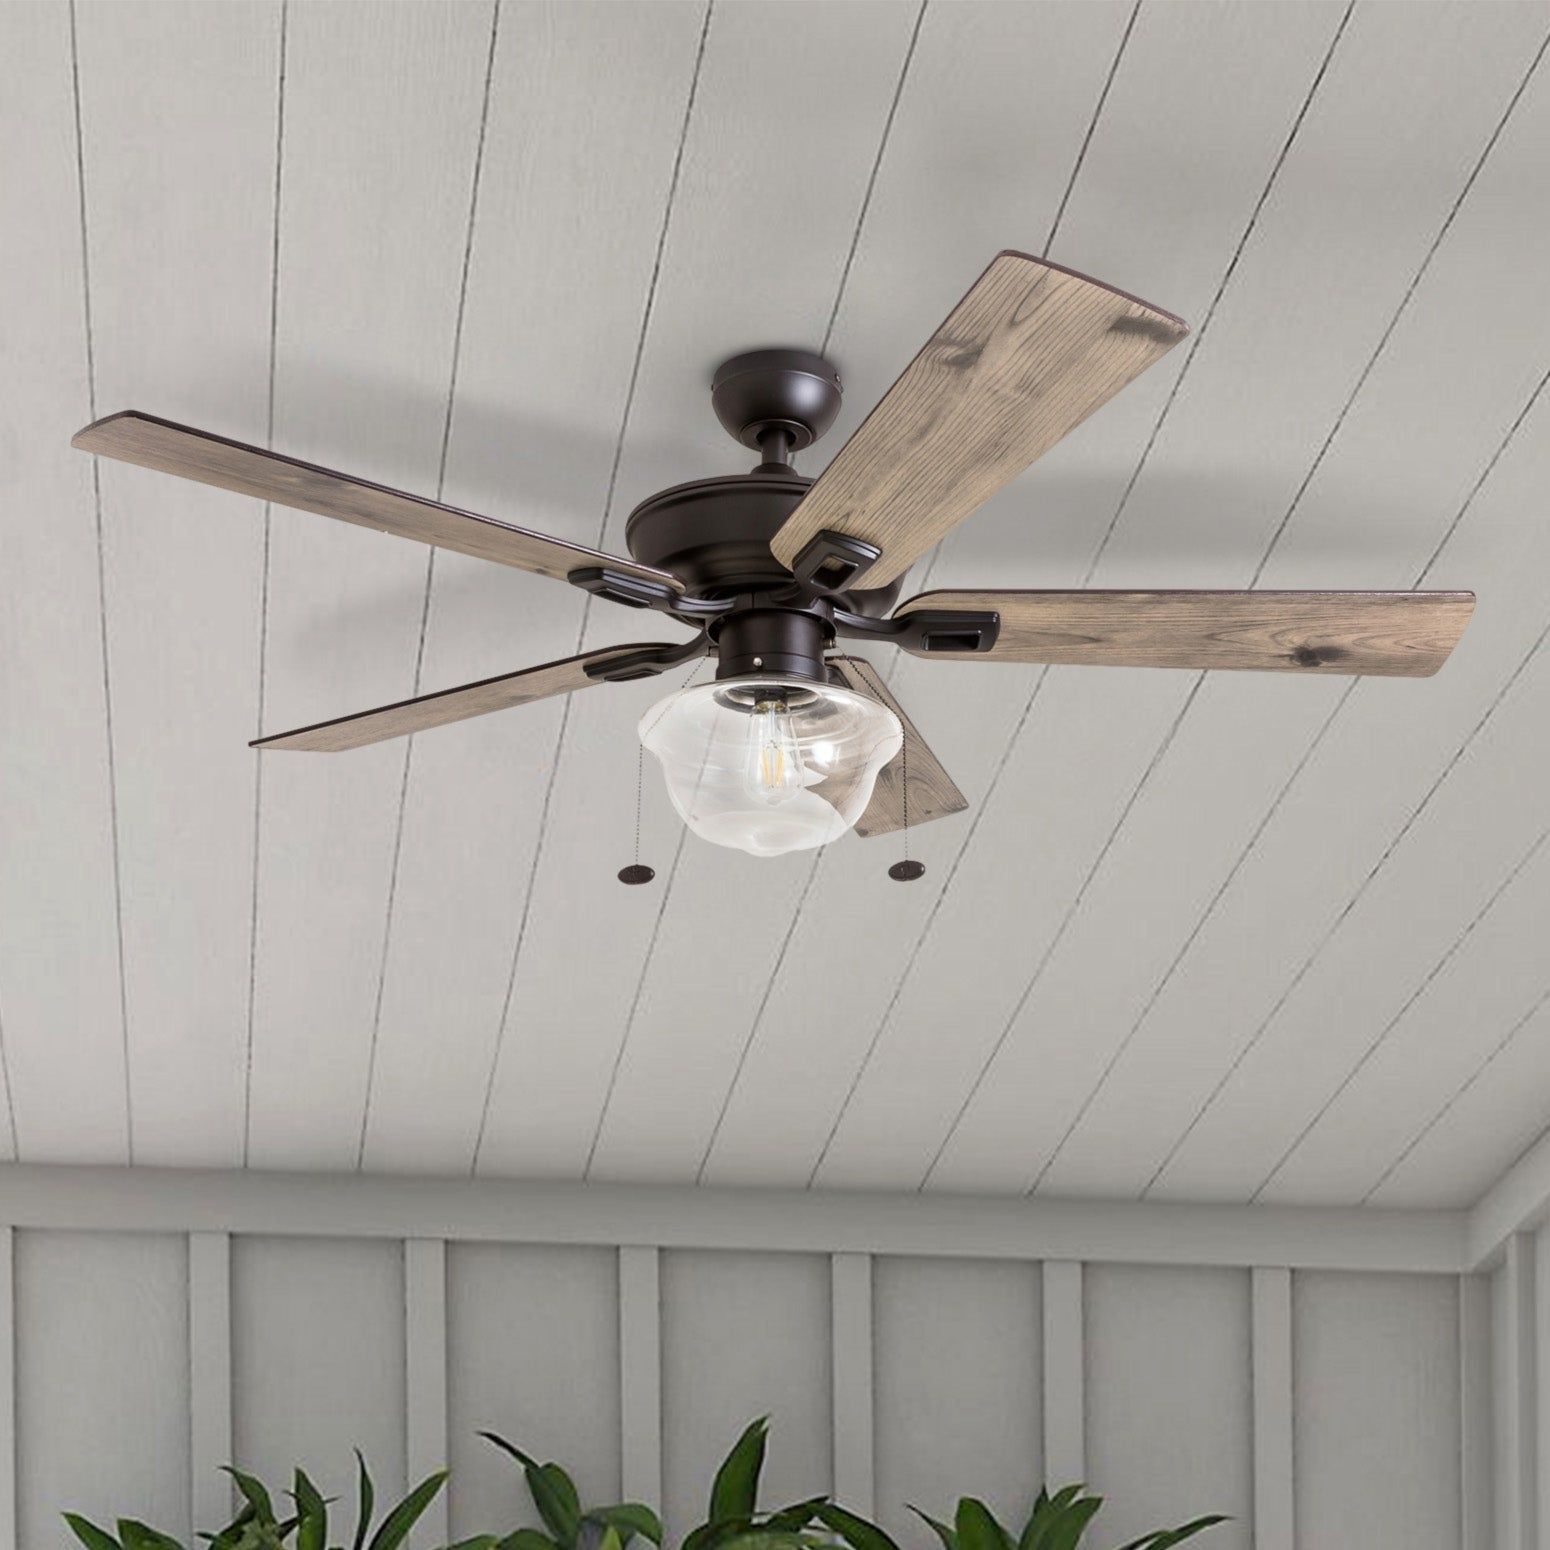 Prominence Home Abner Indoor Outdoor Ceiling Fan Damp Rated